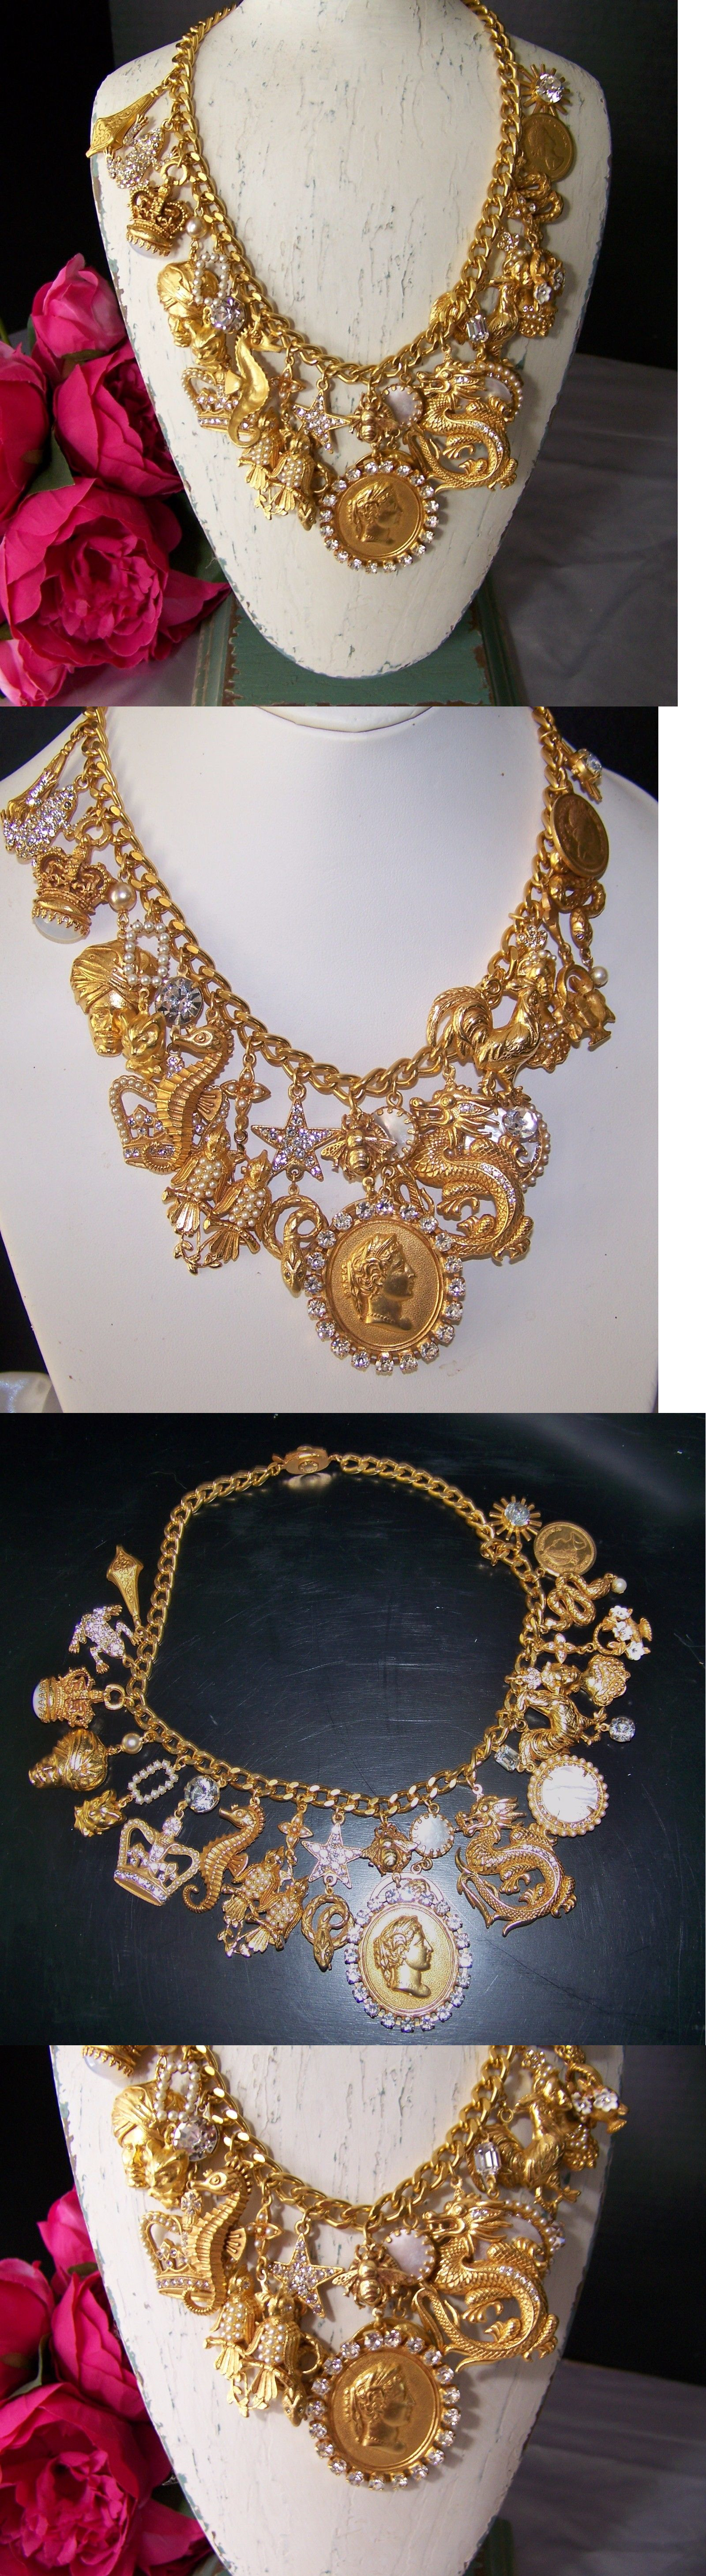 Other undated costume jewelry authentic askew london fully